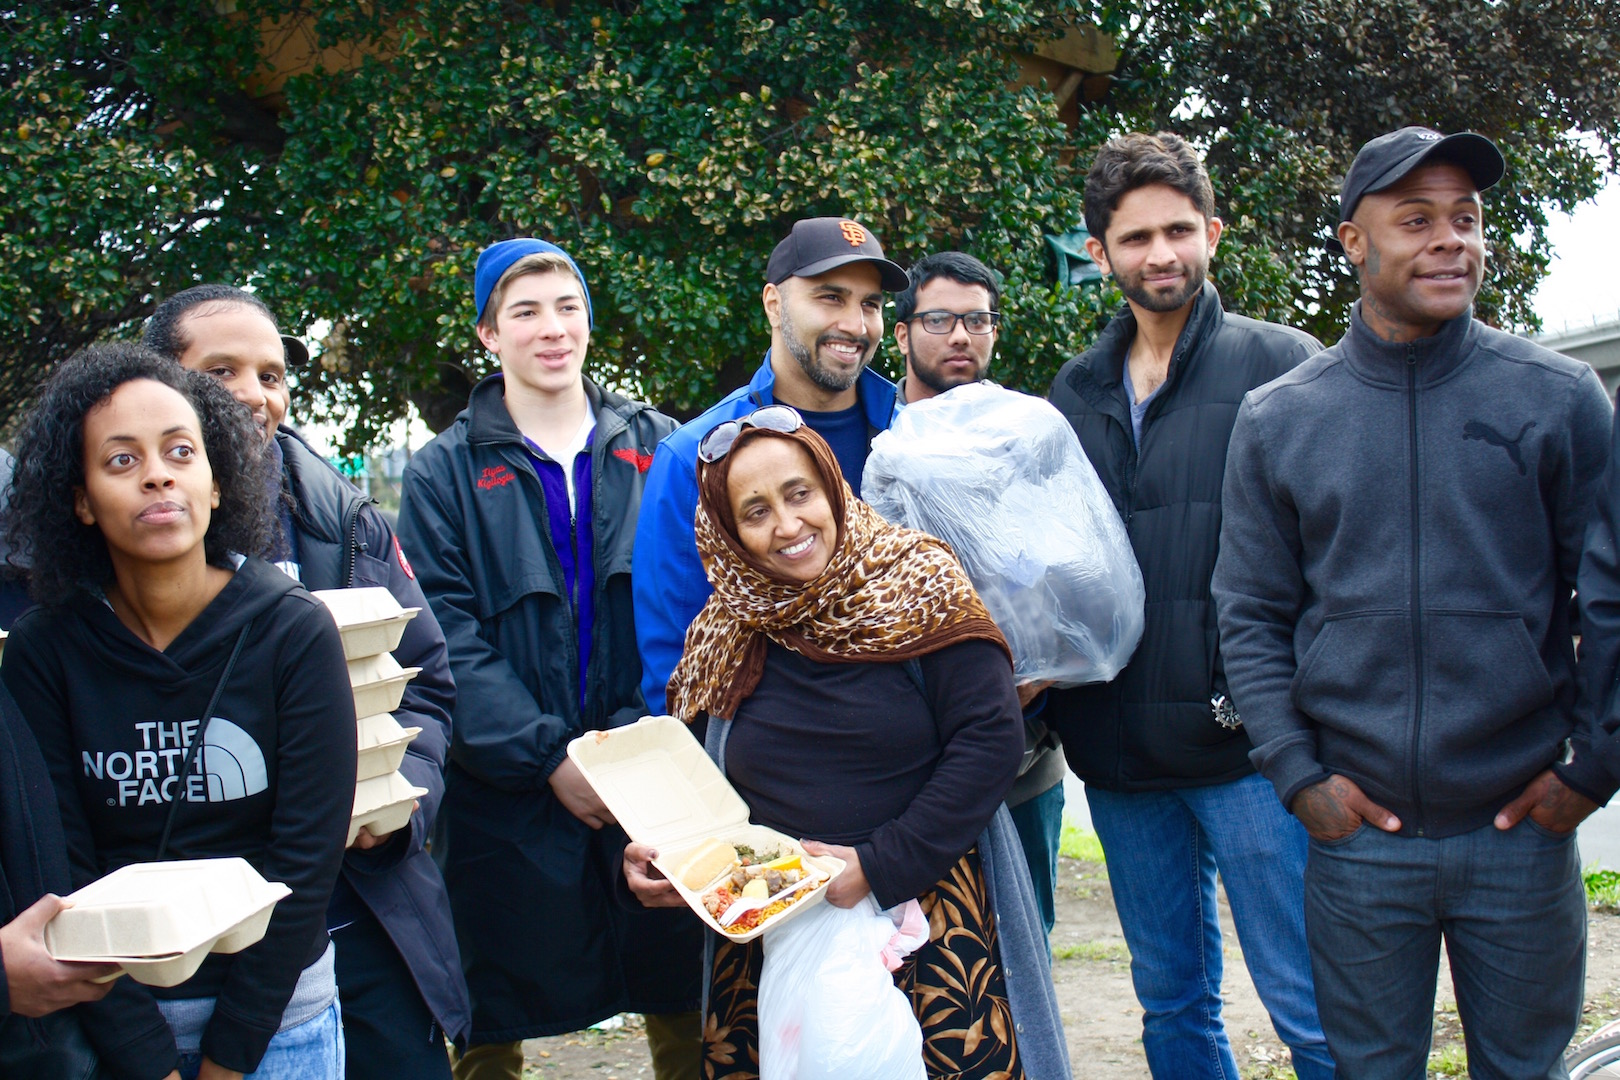 Muslim and Eritrean immigrant communities in the East Bay head to Fruitvale to deliver hot meals and blankets for the homeless during the holidays.